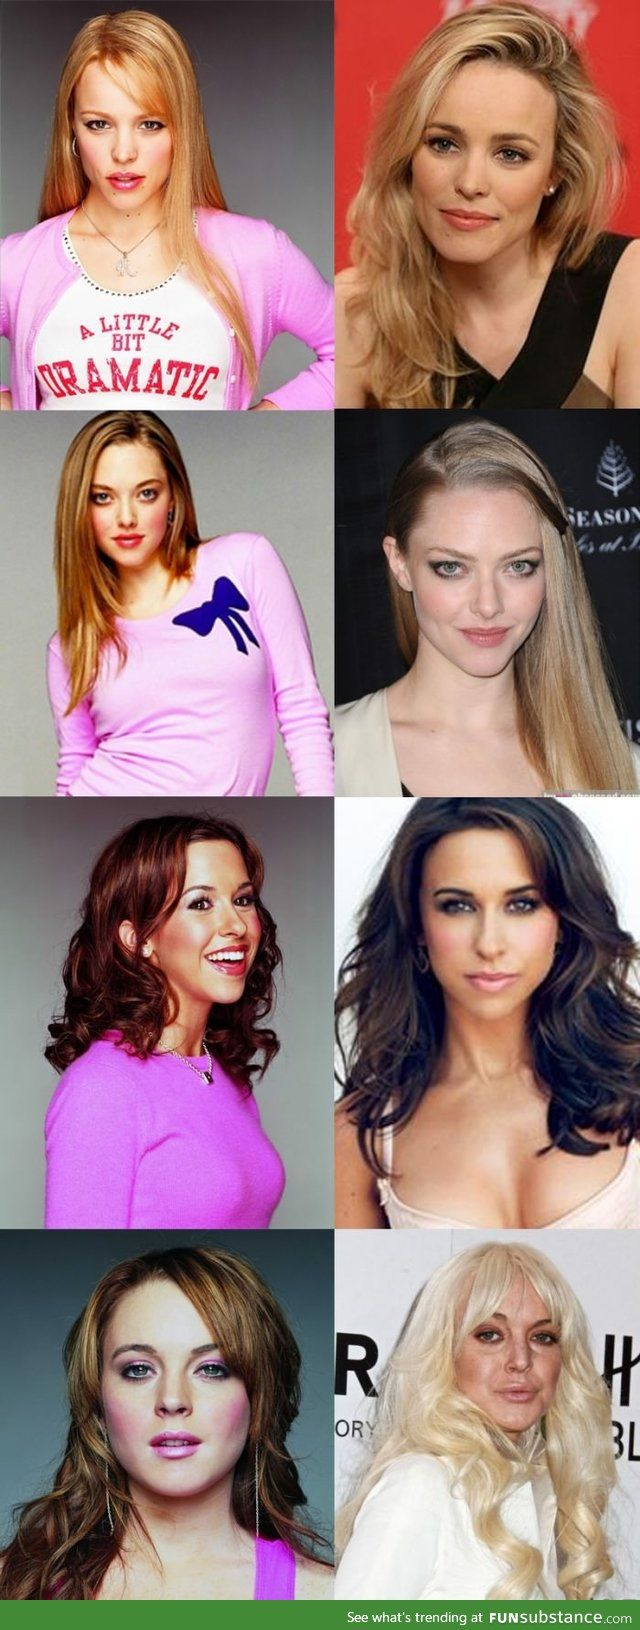 Mean Girls. Feeling old now?